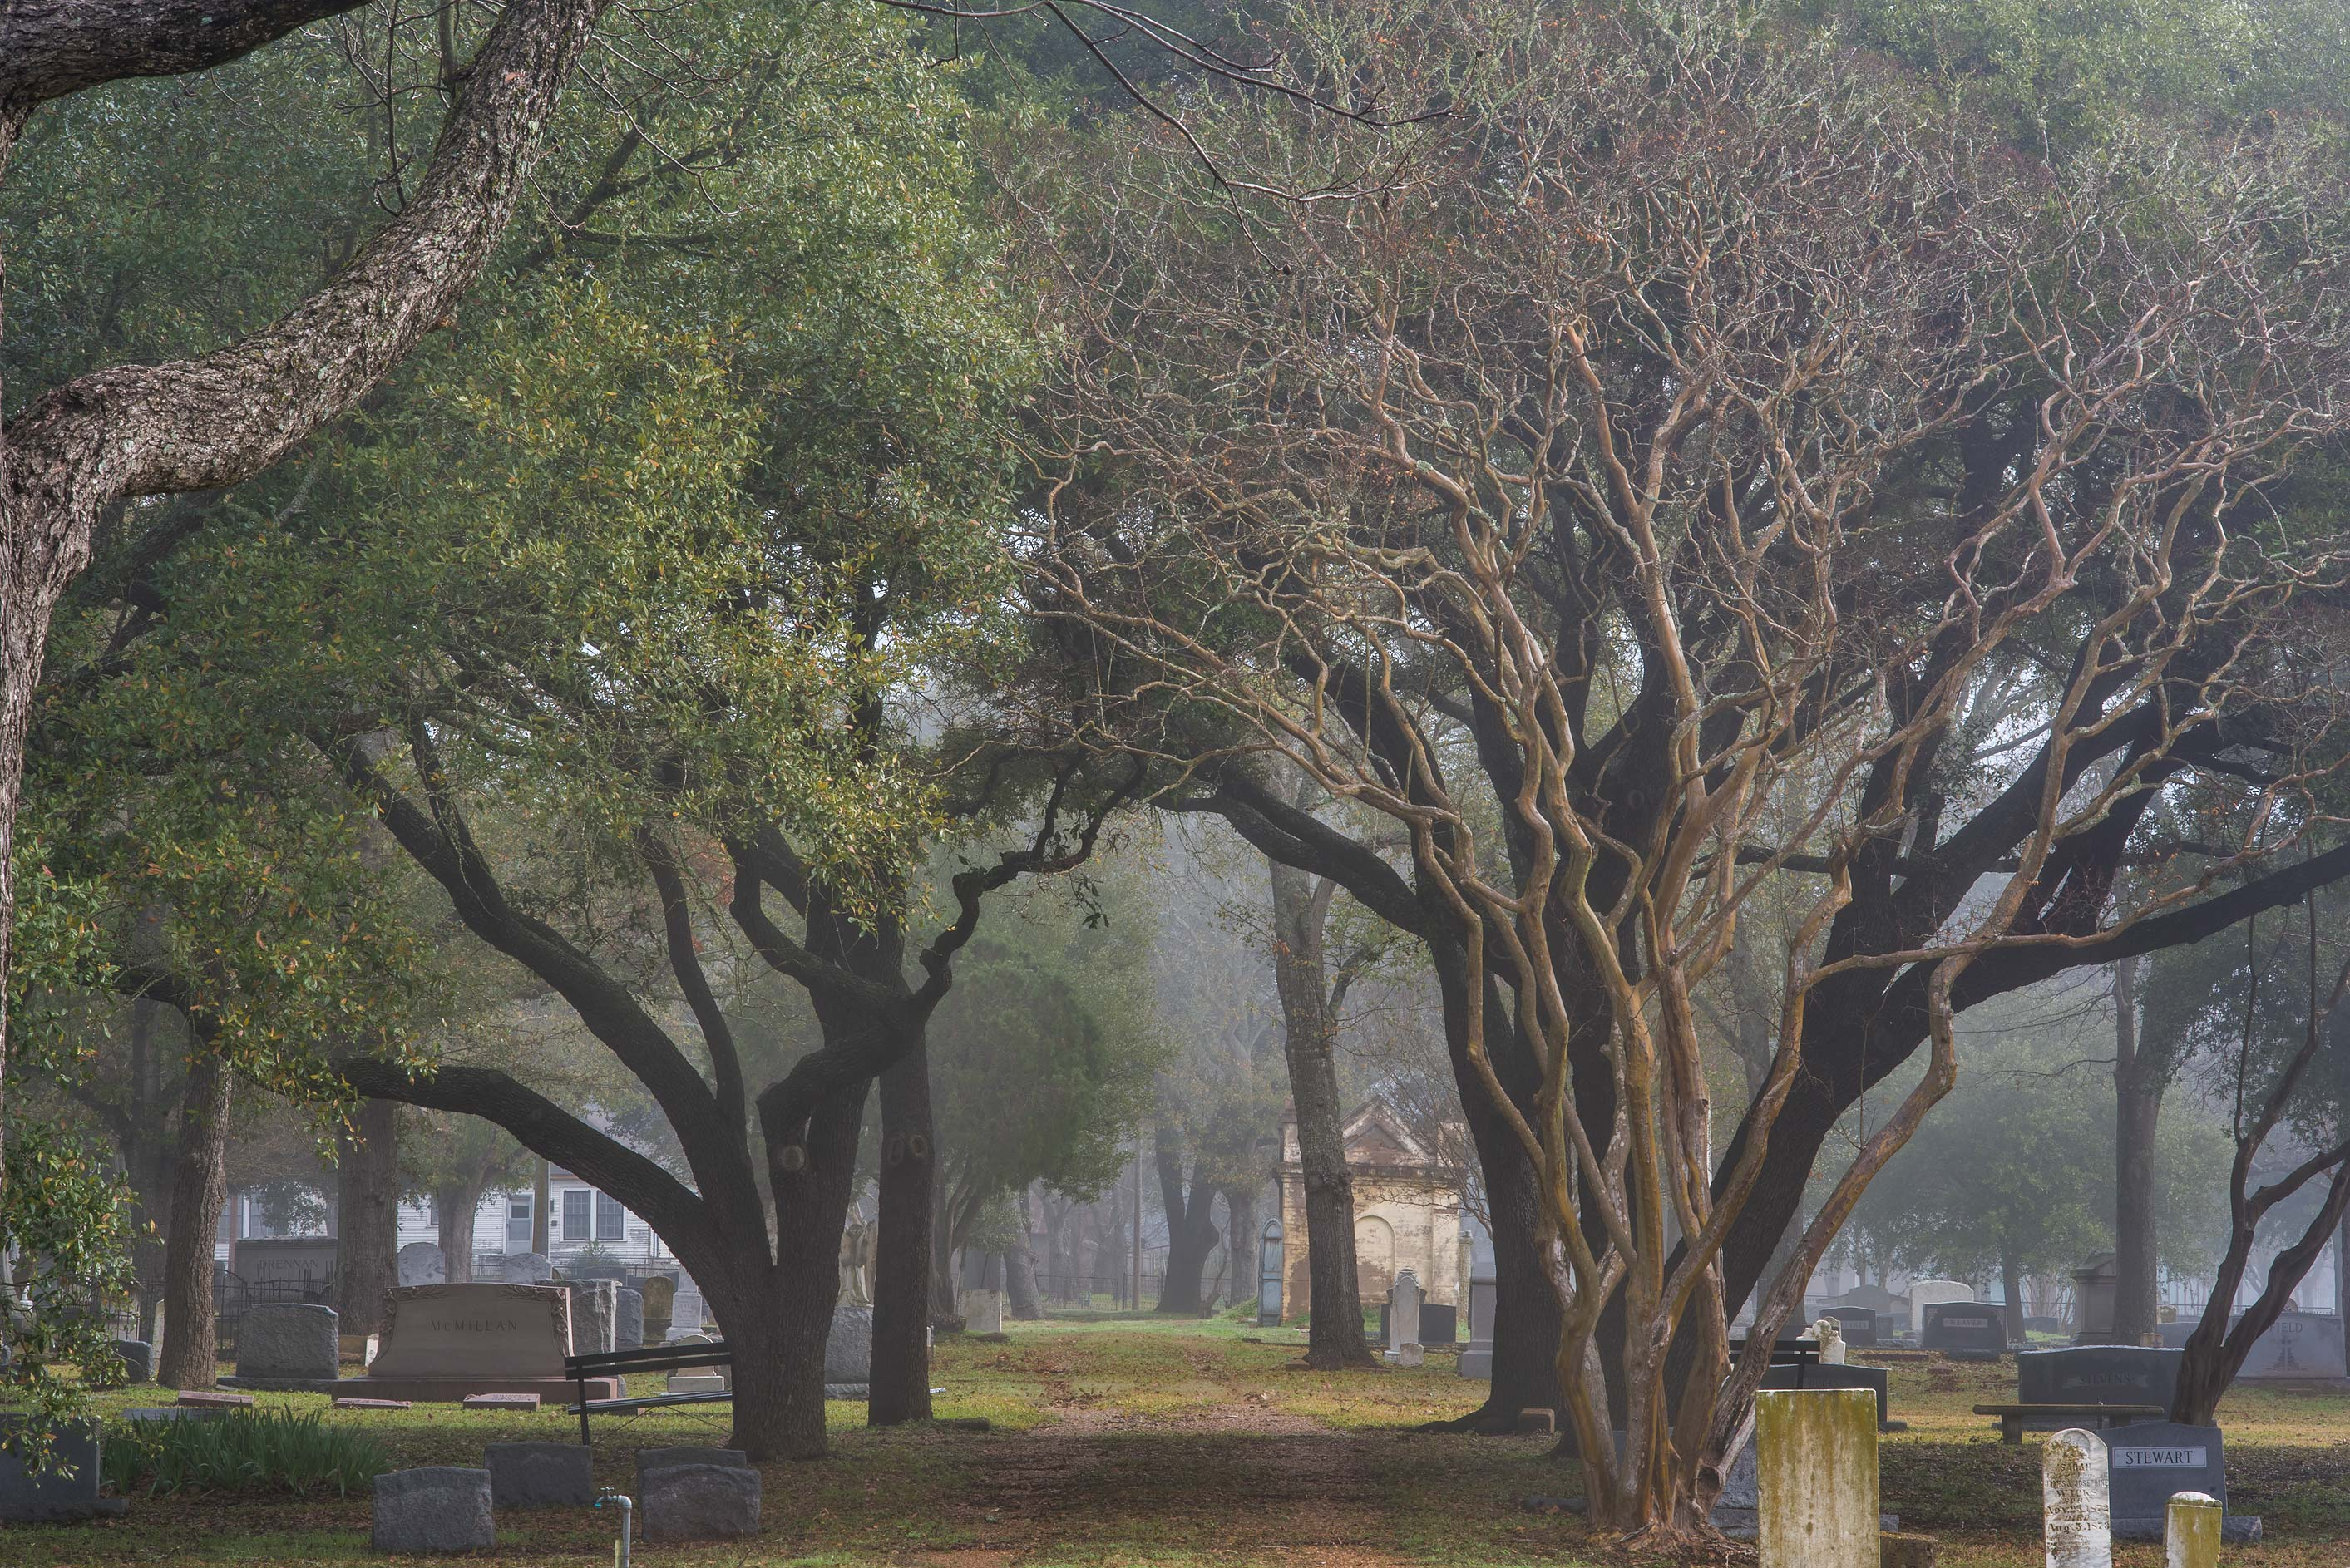 Alley in Calvert Cemetery in mist. Calvert, Texas